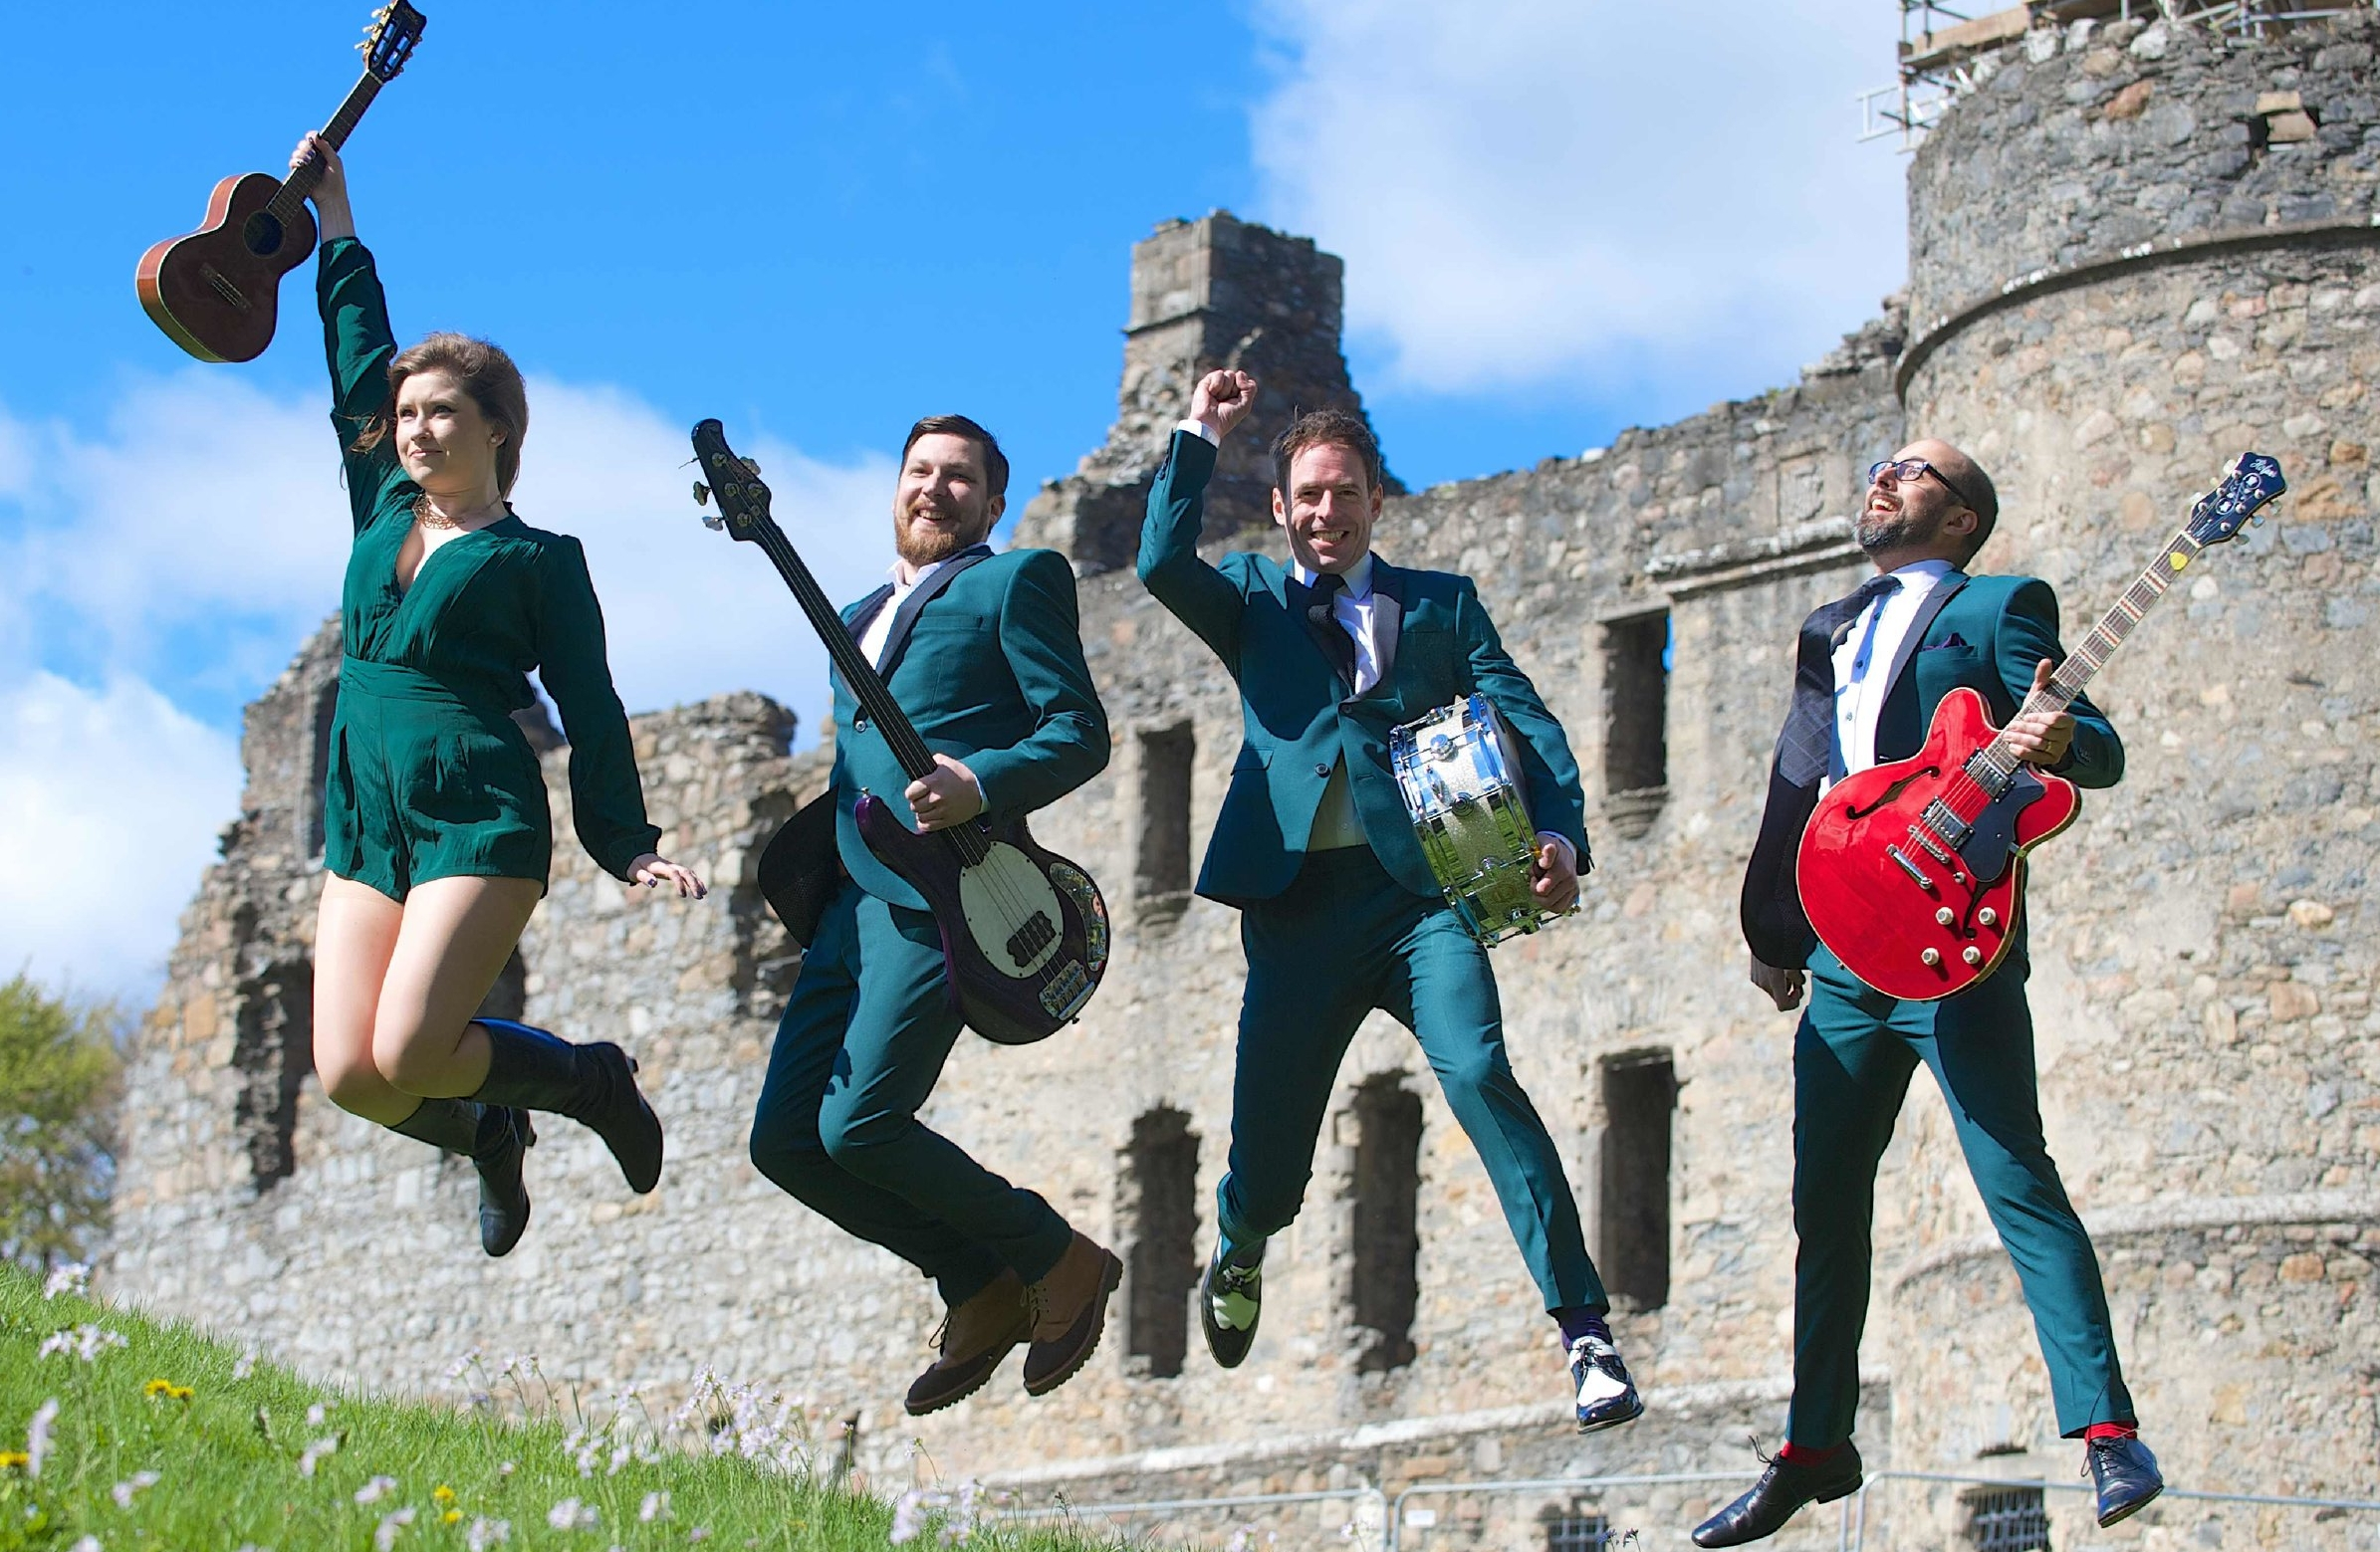 Staging a gig in ruins of an ancient Scottish castle